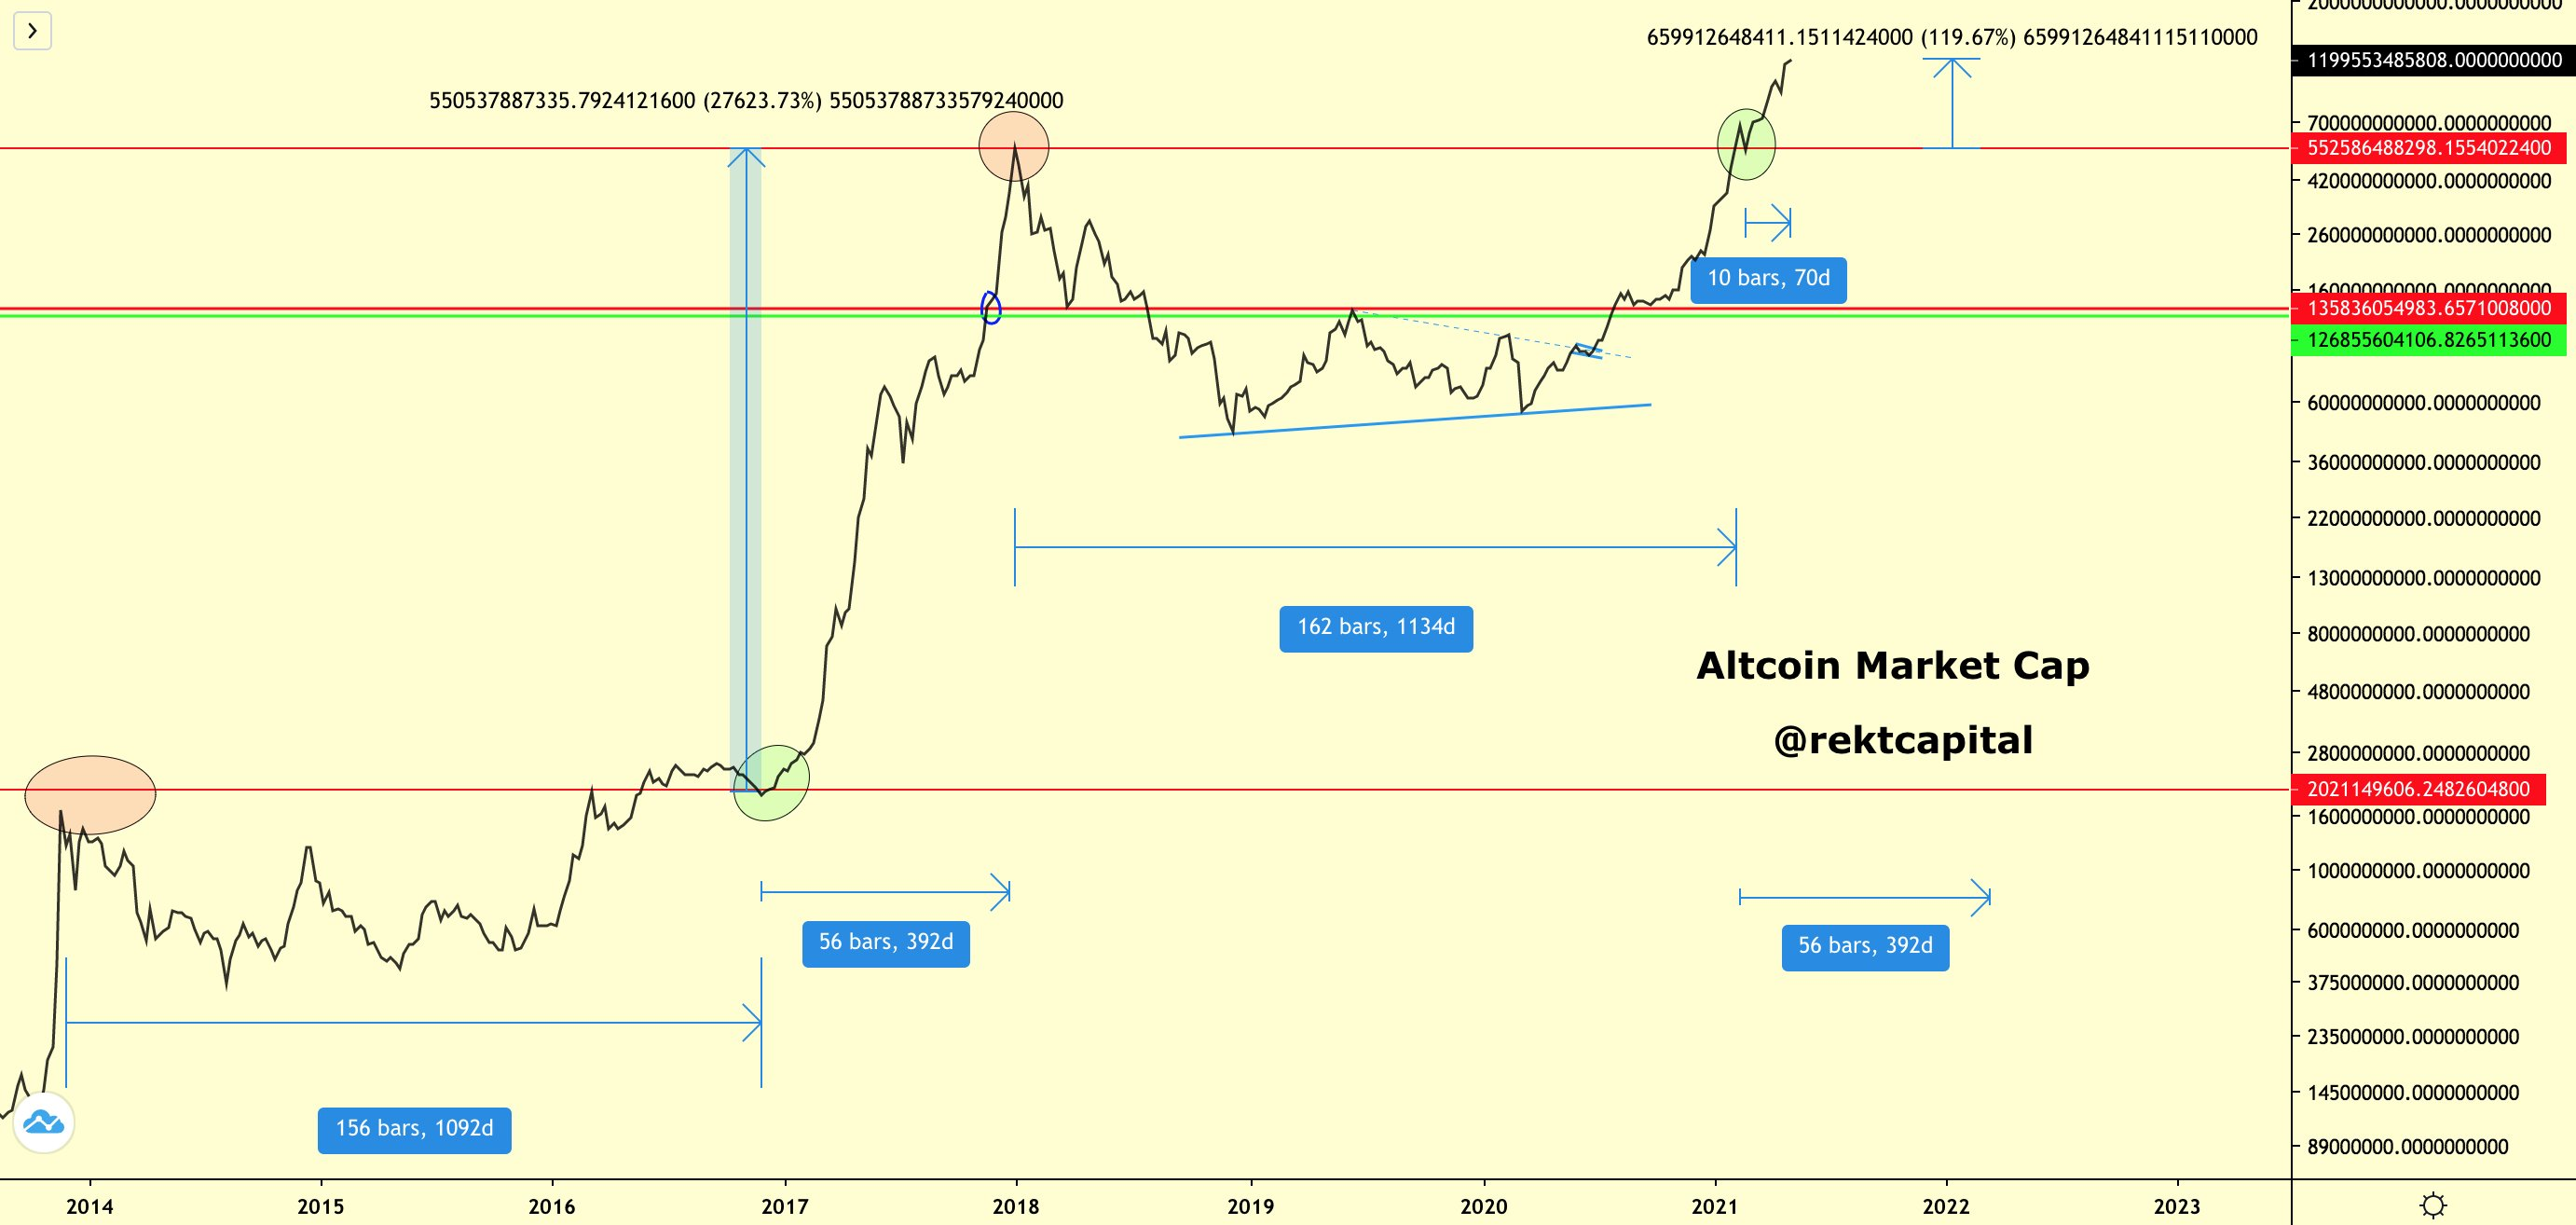 altcoins just repeated a move that could launch them 27000 higher in 2021